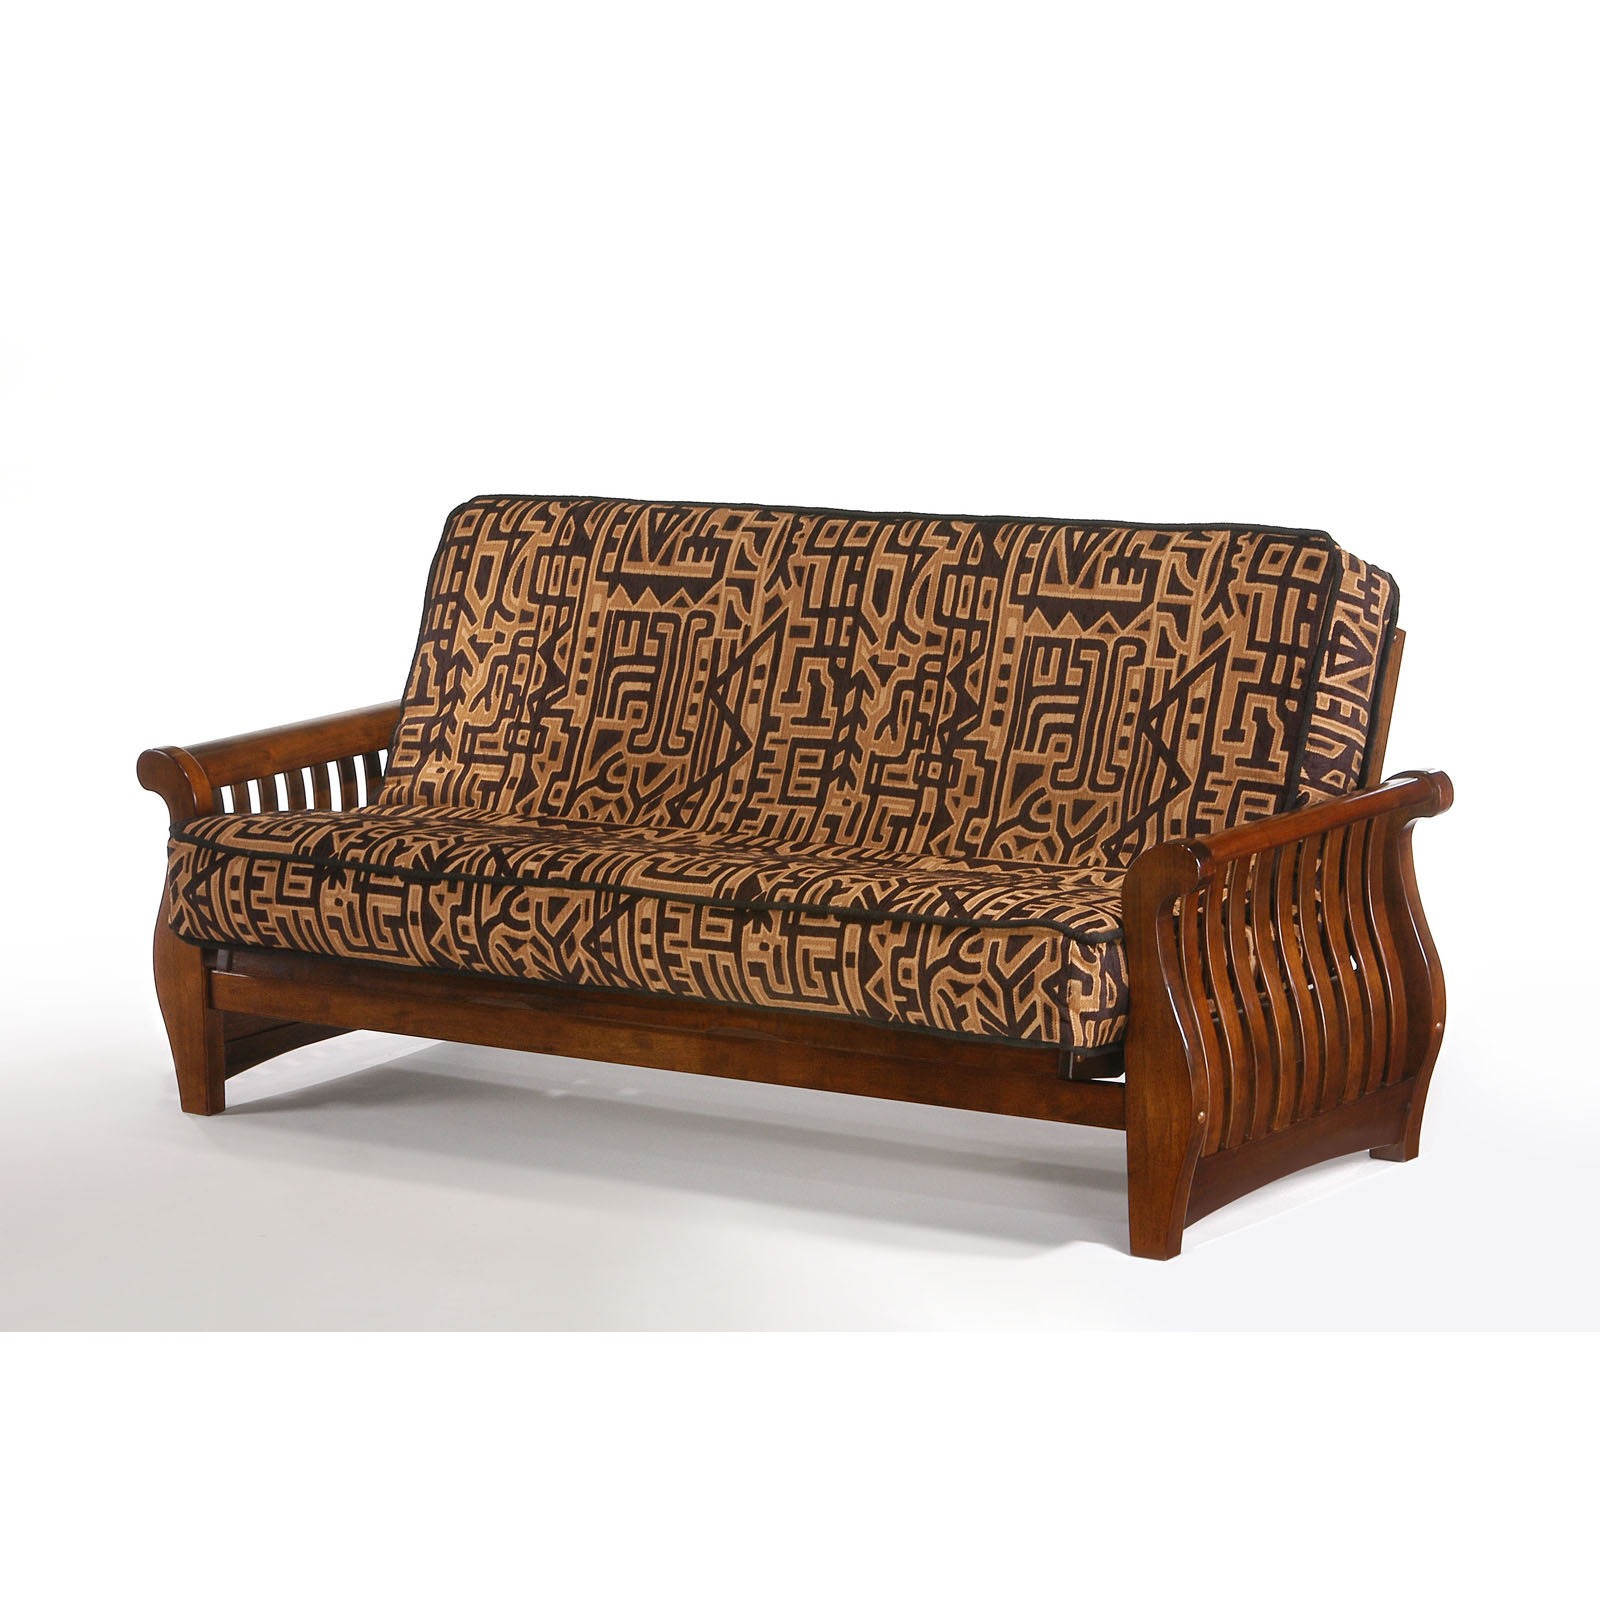 Nightfall Queen Futon by NIGHT AND DAY FURNITURE ONLINE in